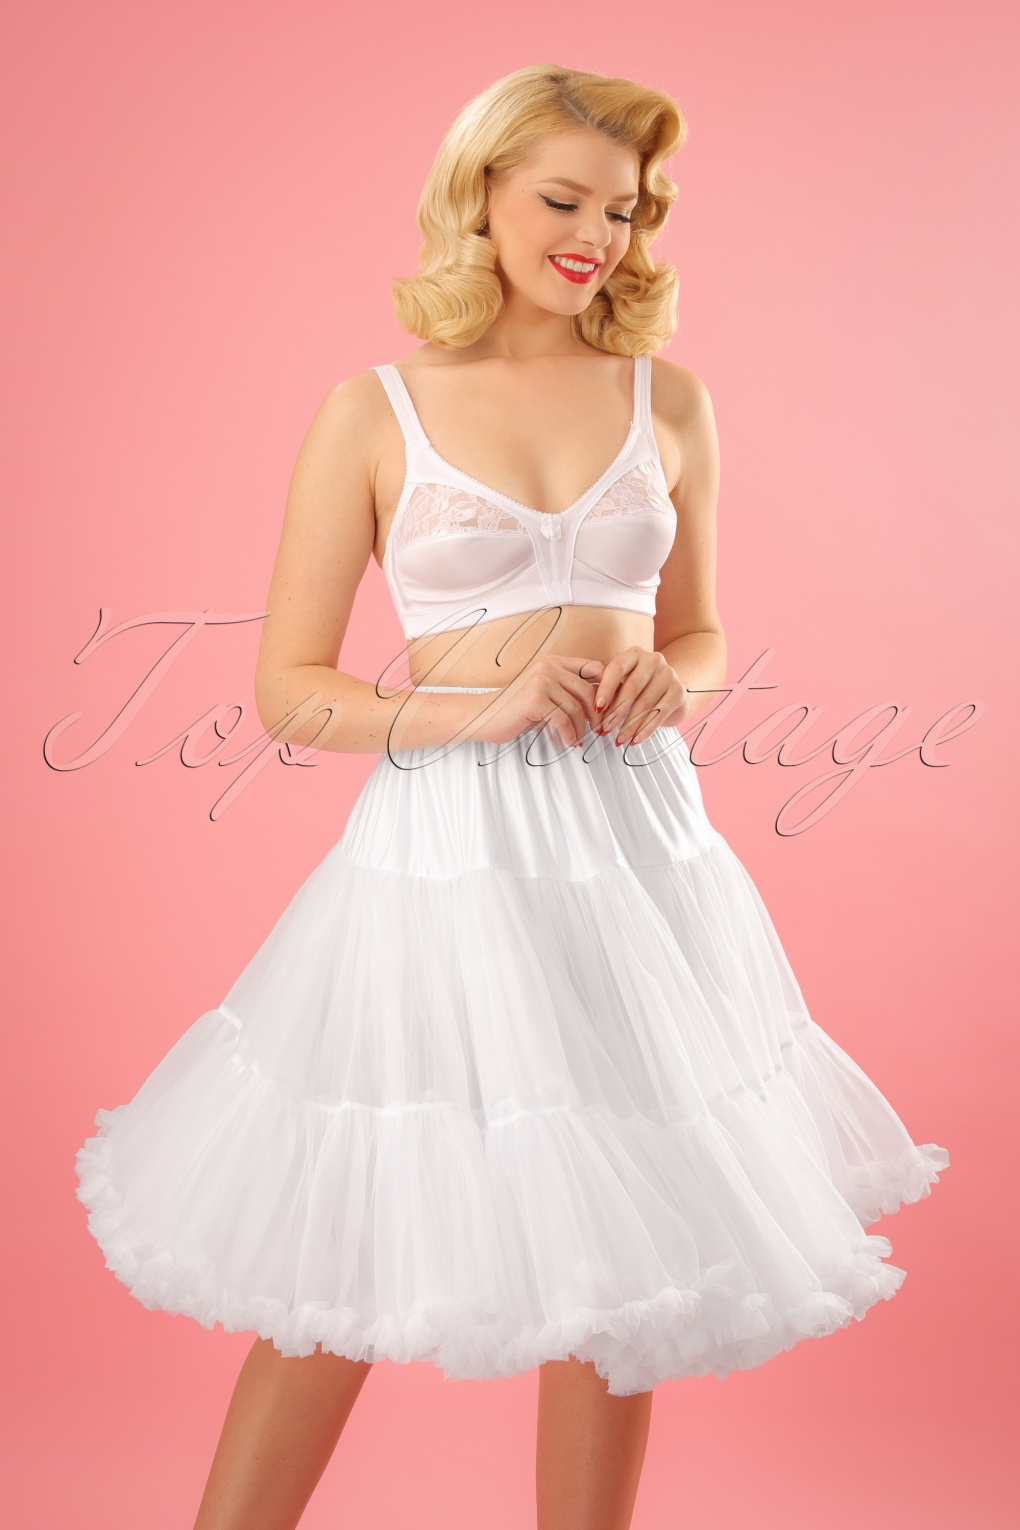 60s Dresses & 60s Style Dresses UK 50s Lola Lifeforms Petticoat in White £44.98 AT vintagedancer.com